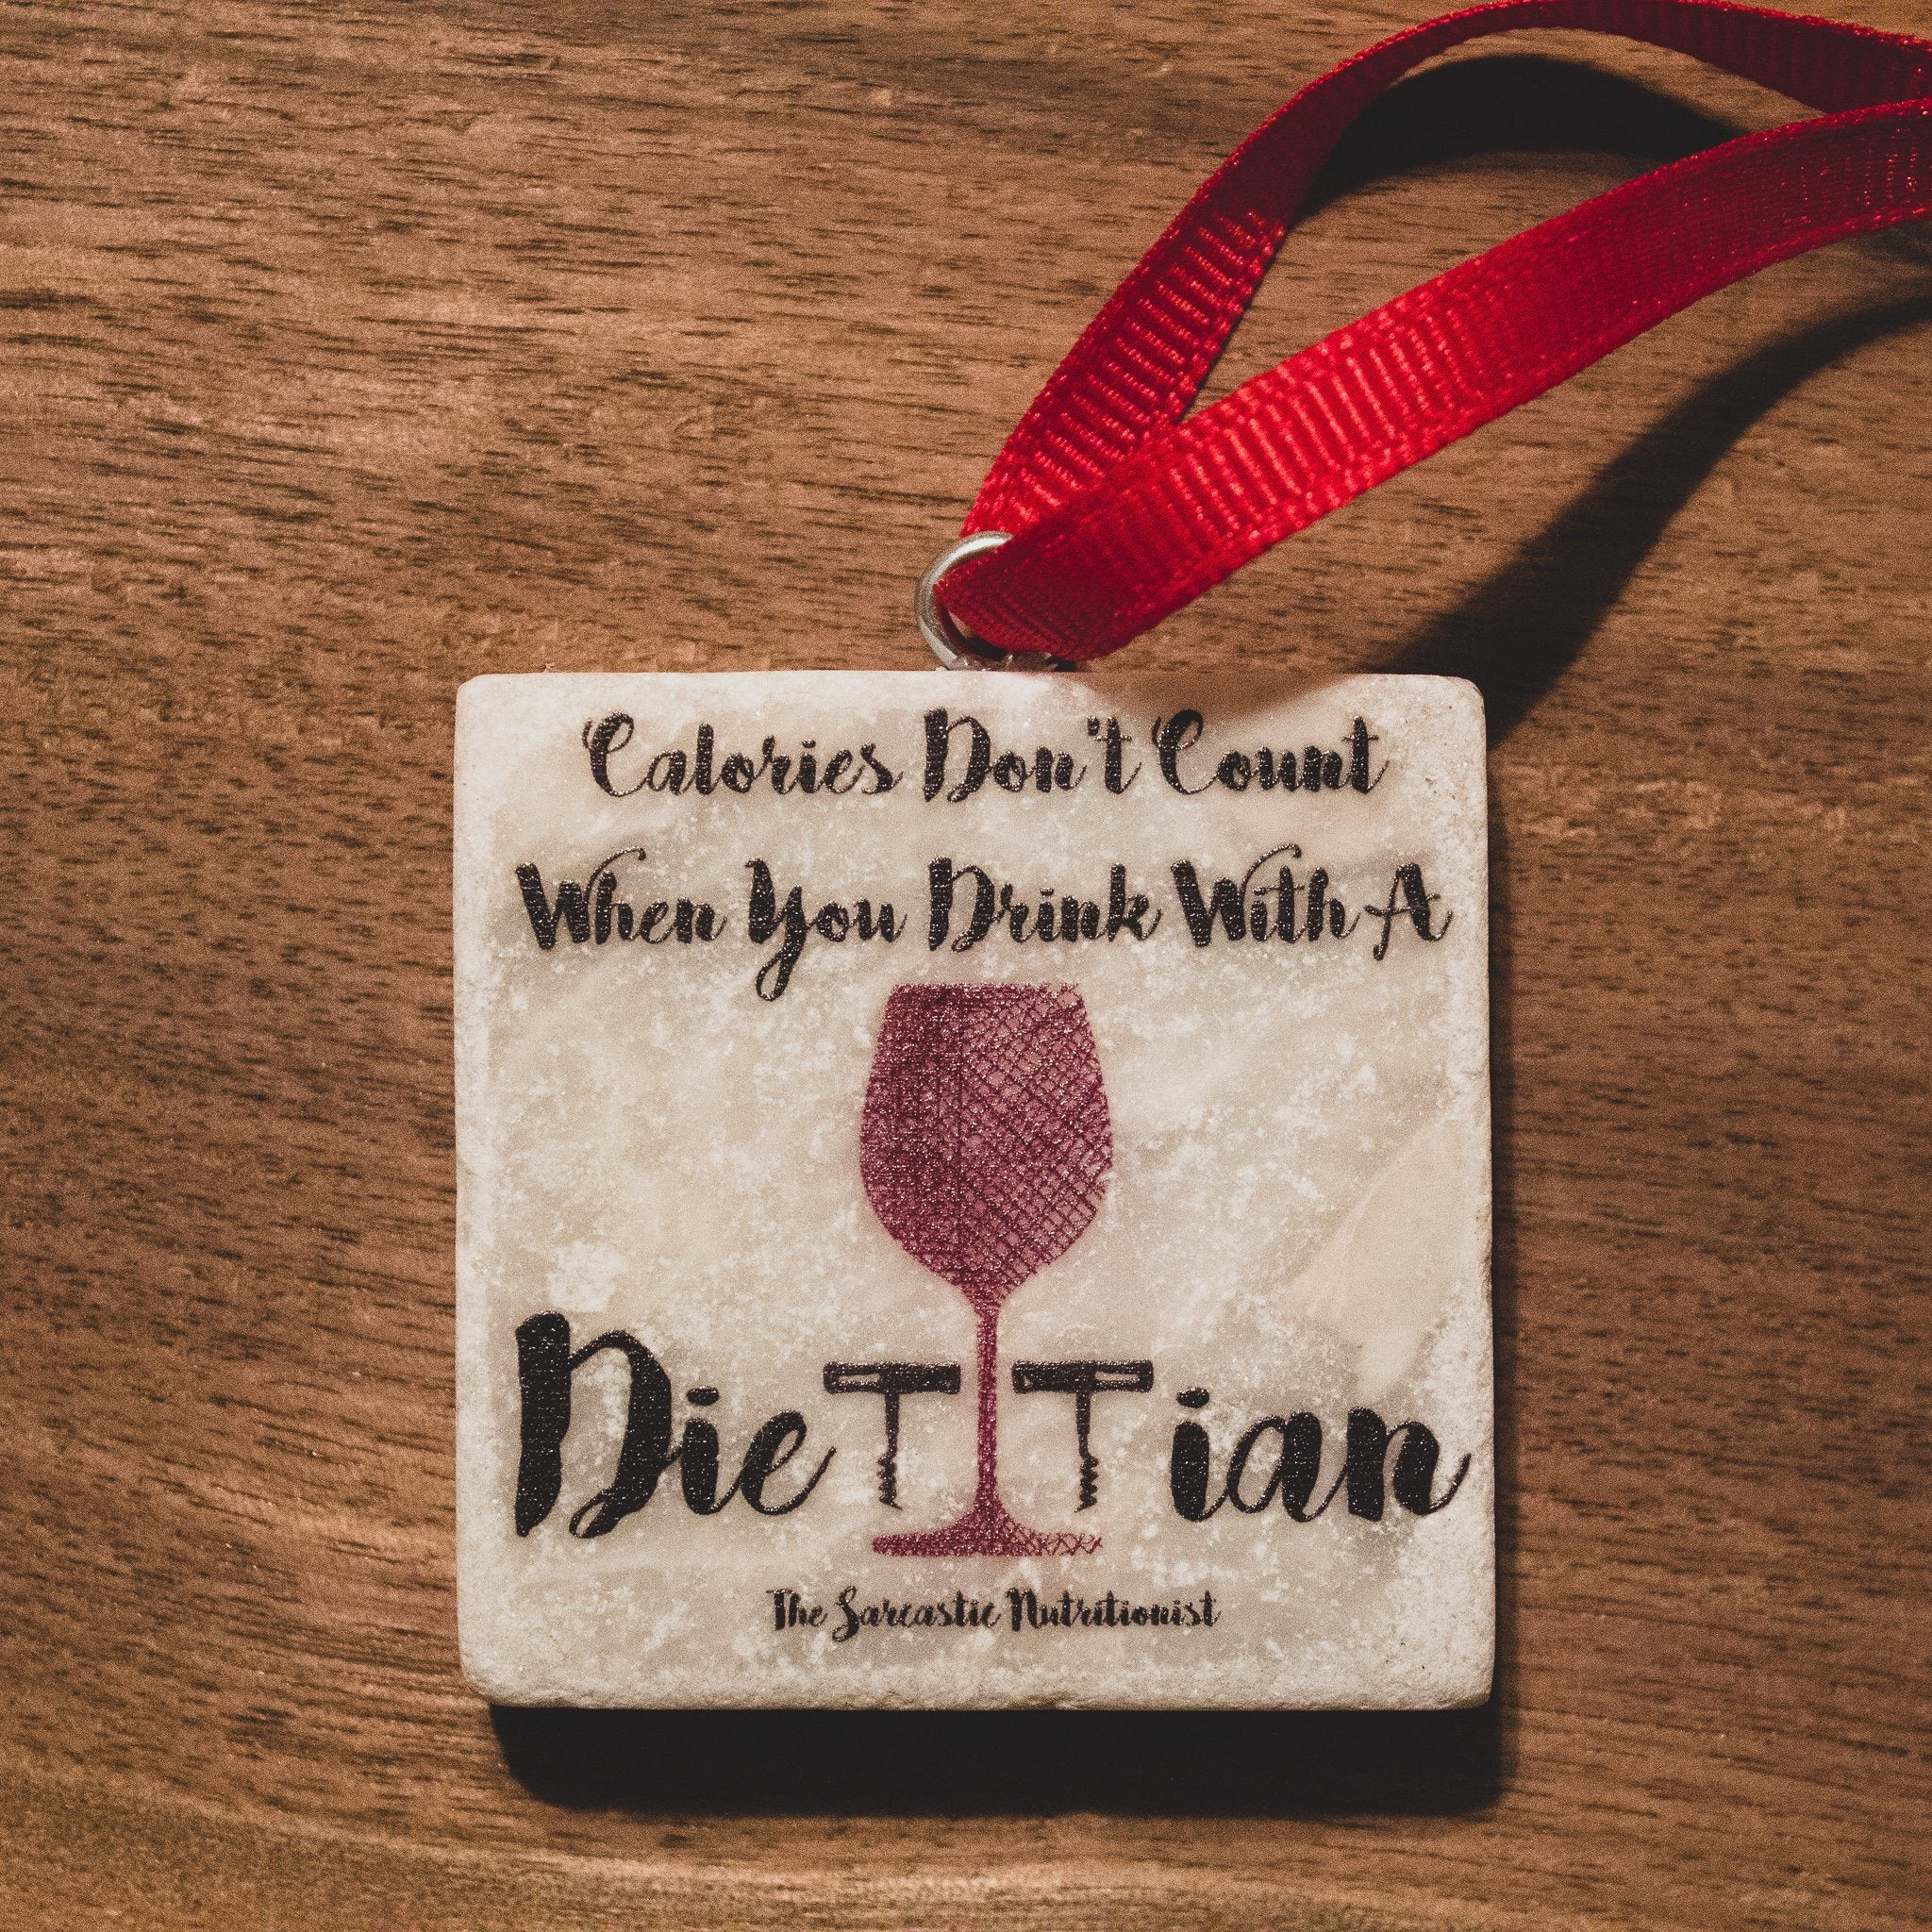 Calories Don't Count... Dietitian Ornament | Dietitian Gift